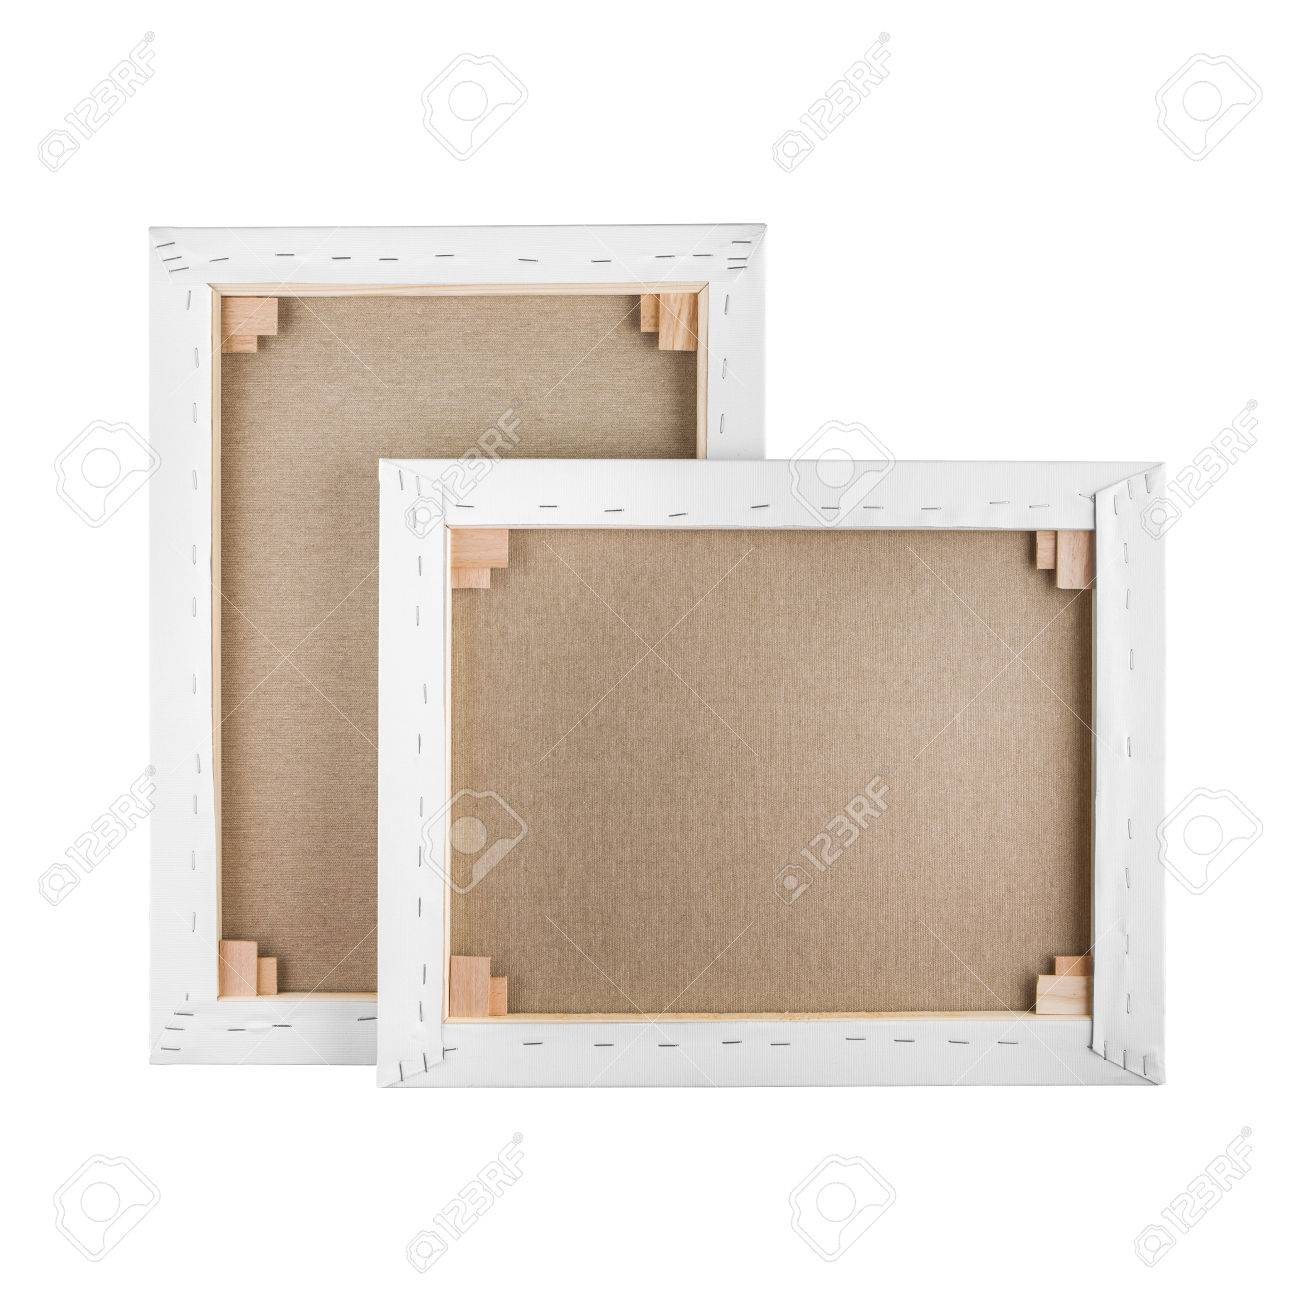 gallery wrapped blank canvas on wooden frame stretcher bar stock